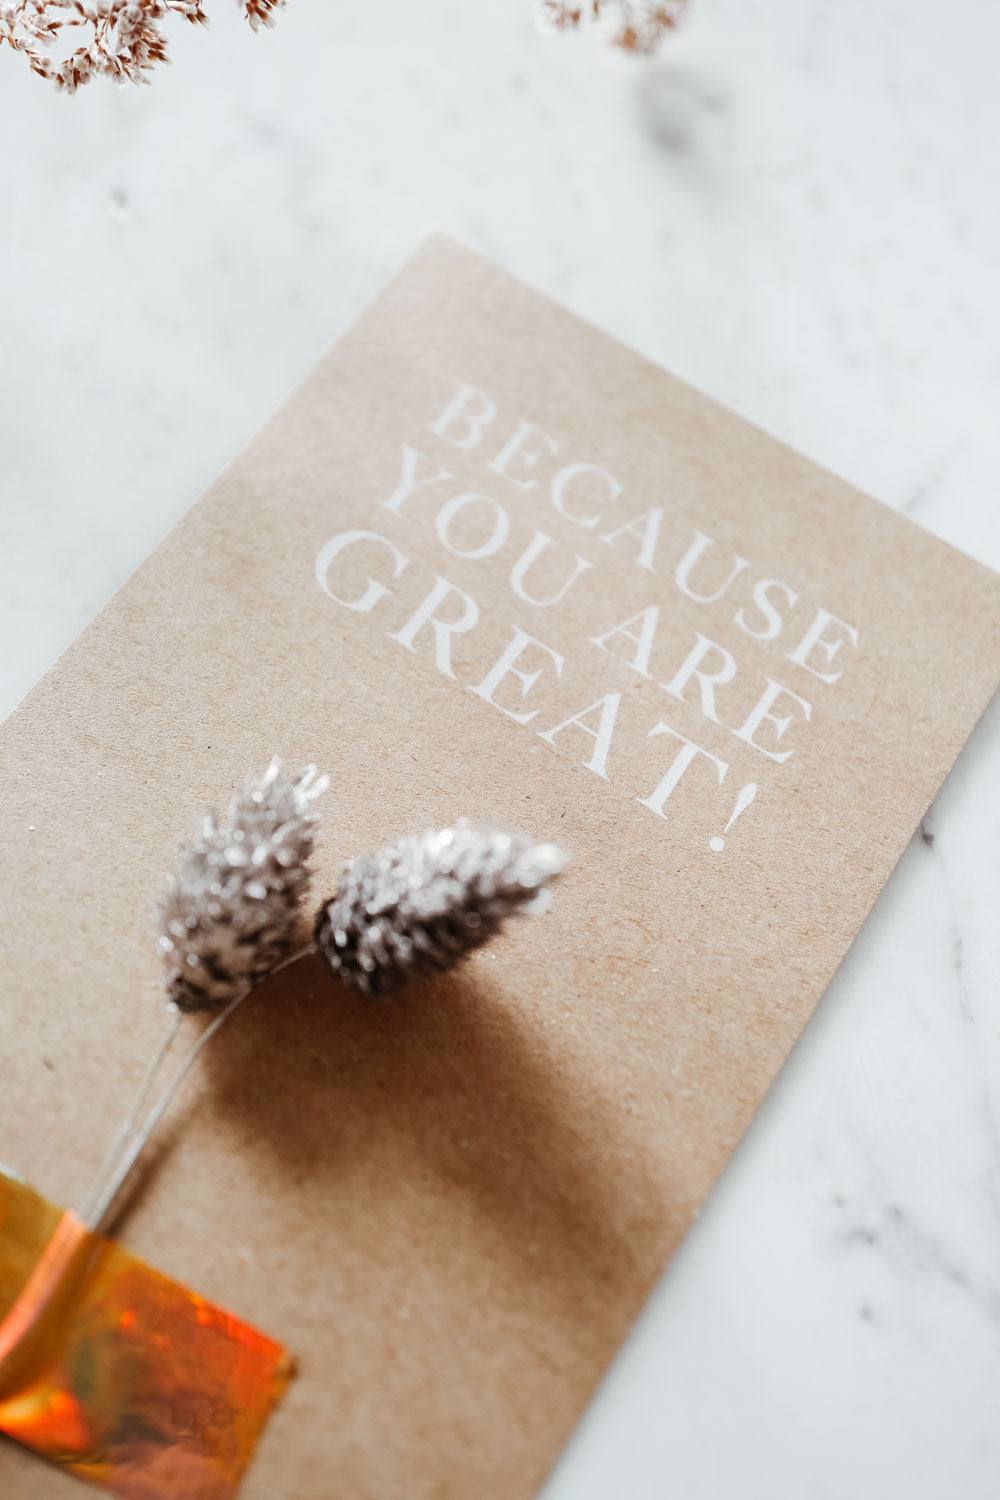 Postcard - Because You Are Great